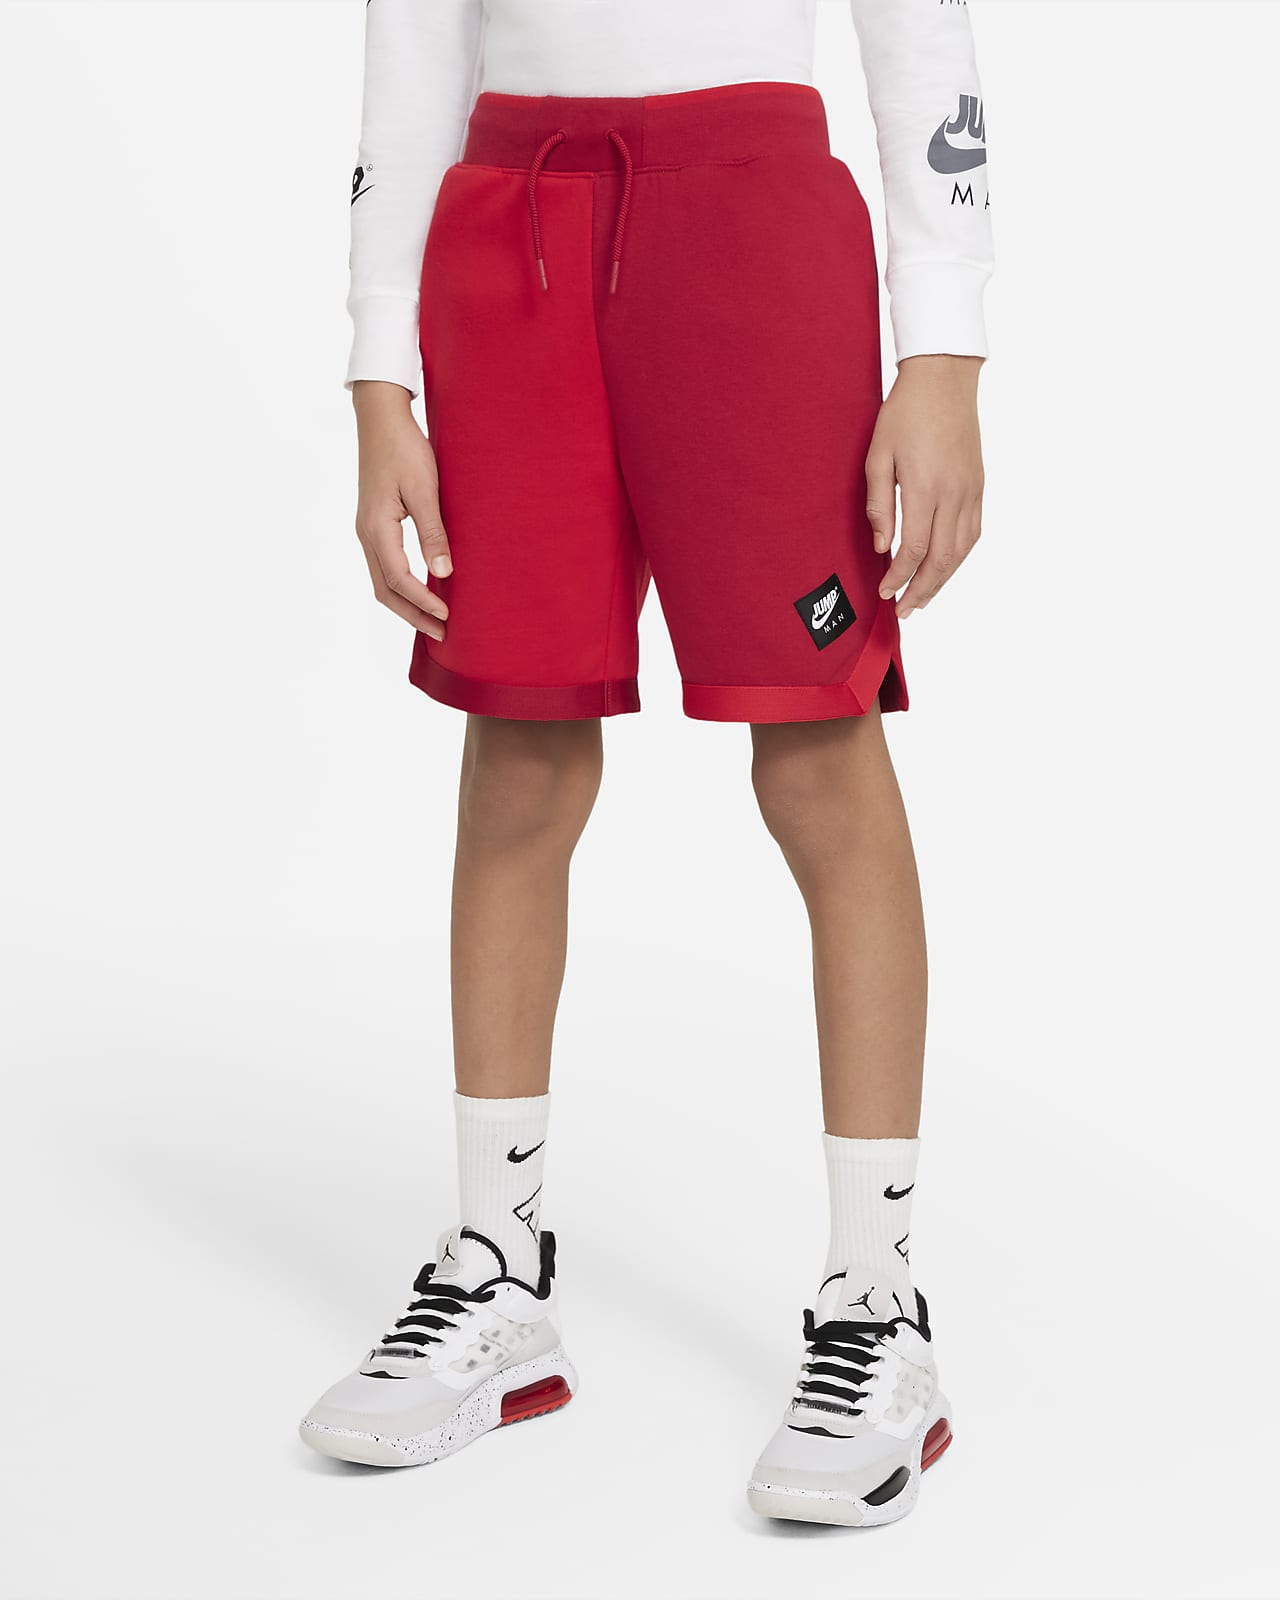 Jordan Big Kids' (Boys') Shorts